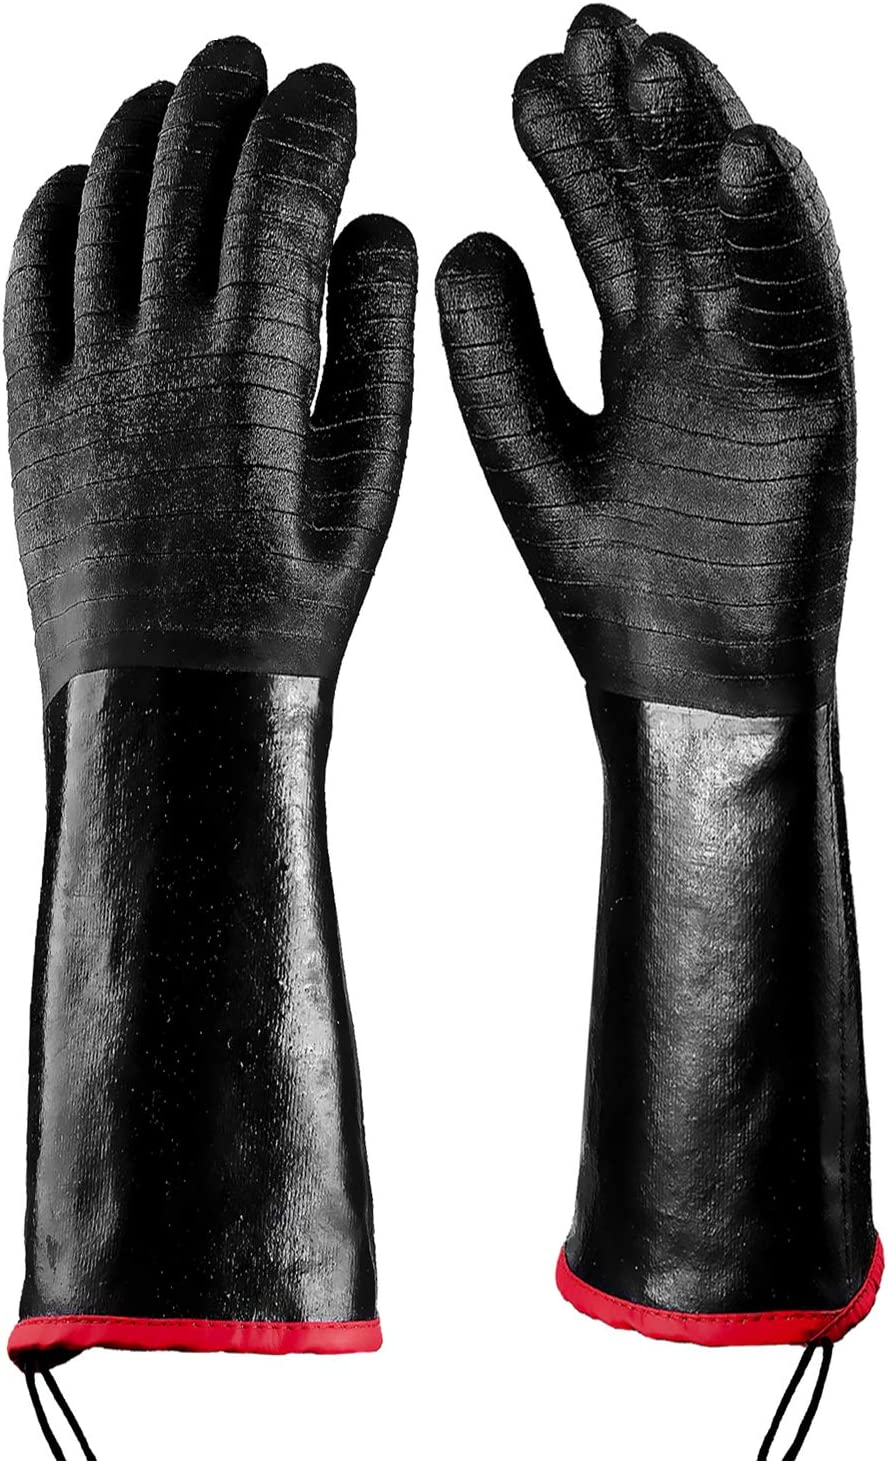 DEFWAY Griller BBQ Gloves Heat Resistant Insulated Cooking Gloves for Barbecue/Grill/Smoker/Fry Turkey/Pot Holder/Oven mitt/Baking, Neoprene Coating with Textured Palms (17-Inch)